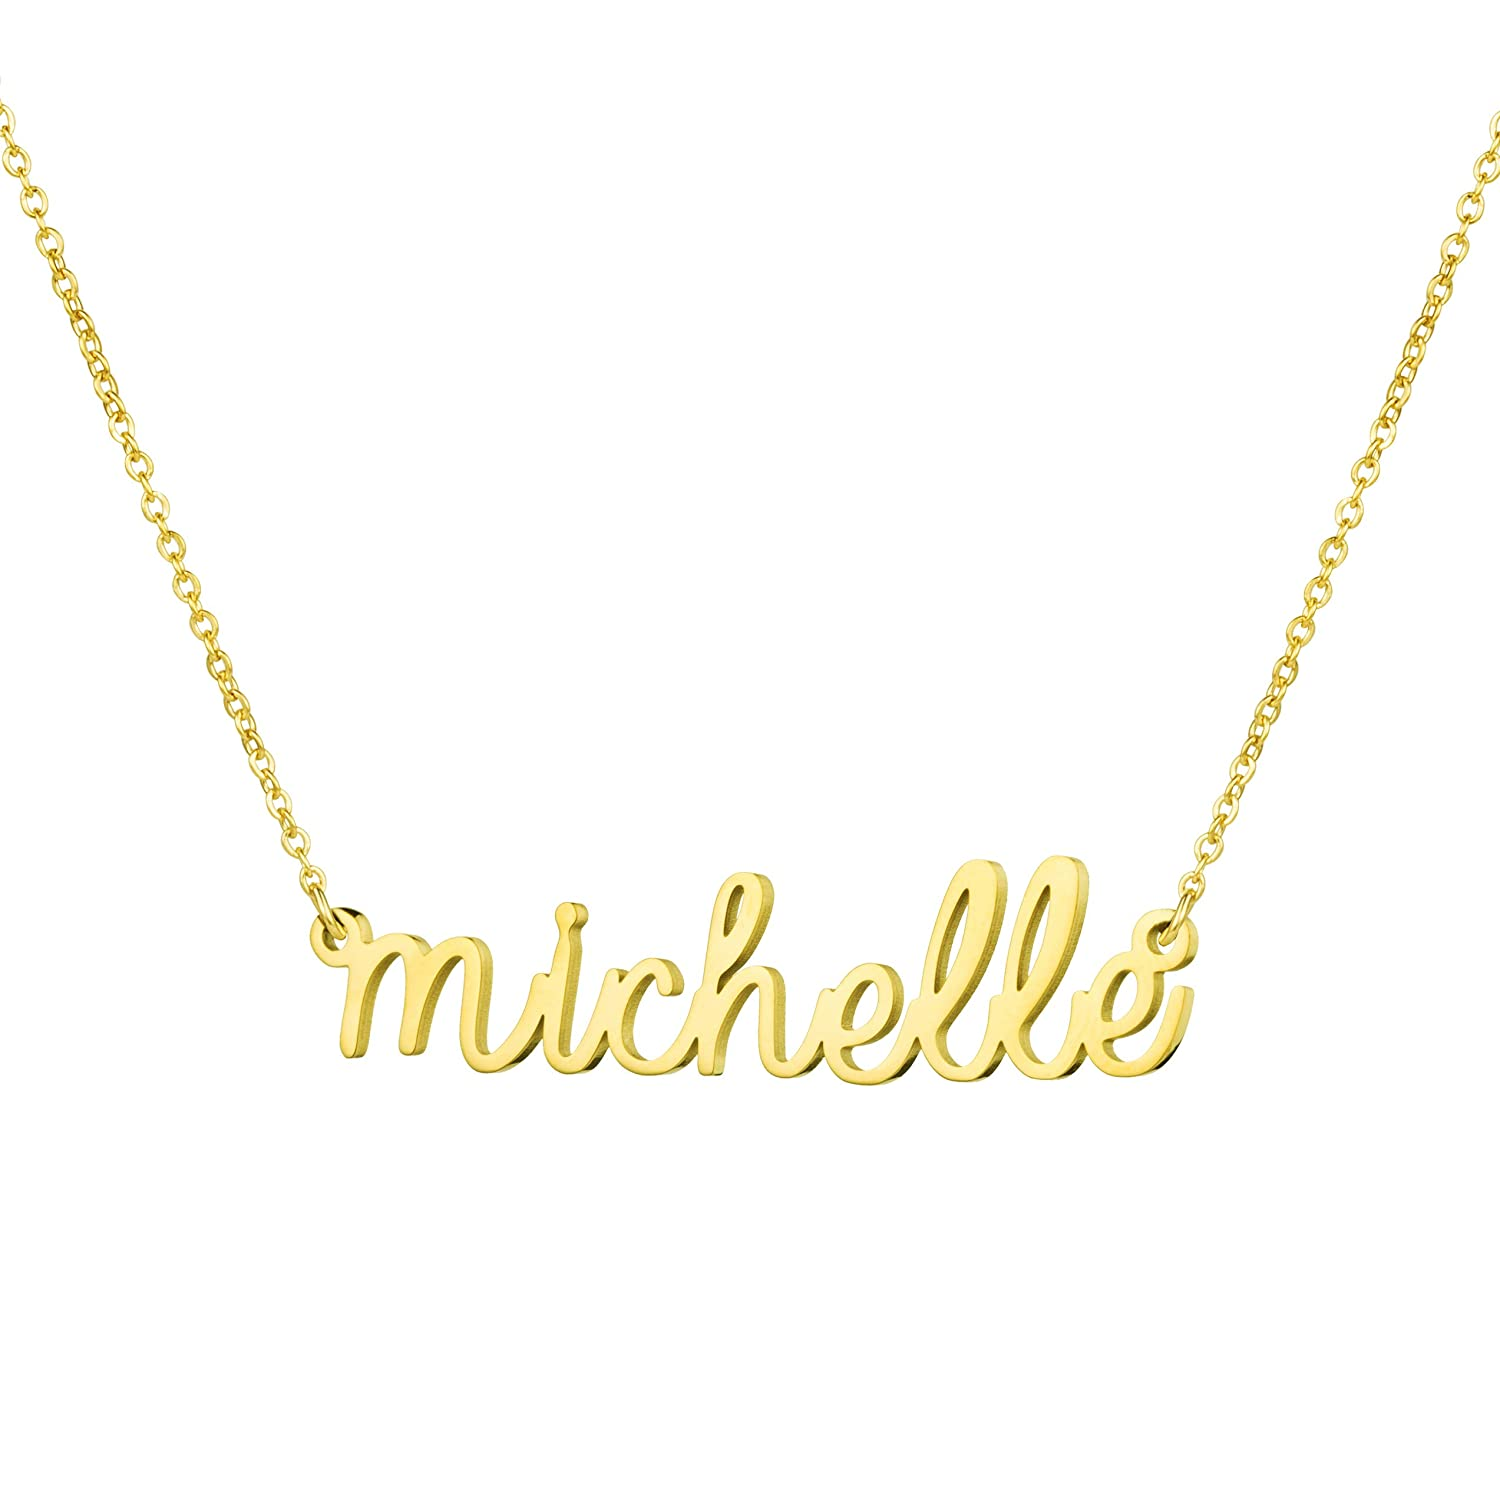 fcf6d10ef Amazon.com: Big Initial Name Necklace Gold Plated Best Friend Jewelry Girls  Women Gift for Her Abigail: Jewelry